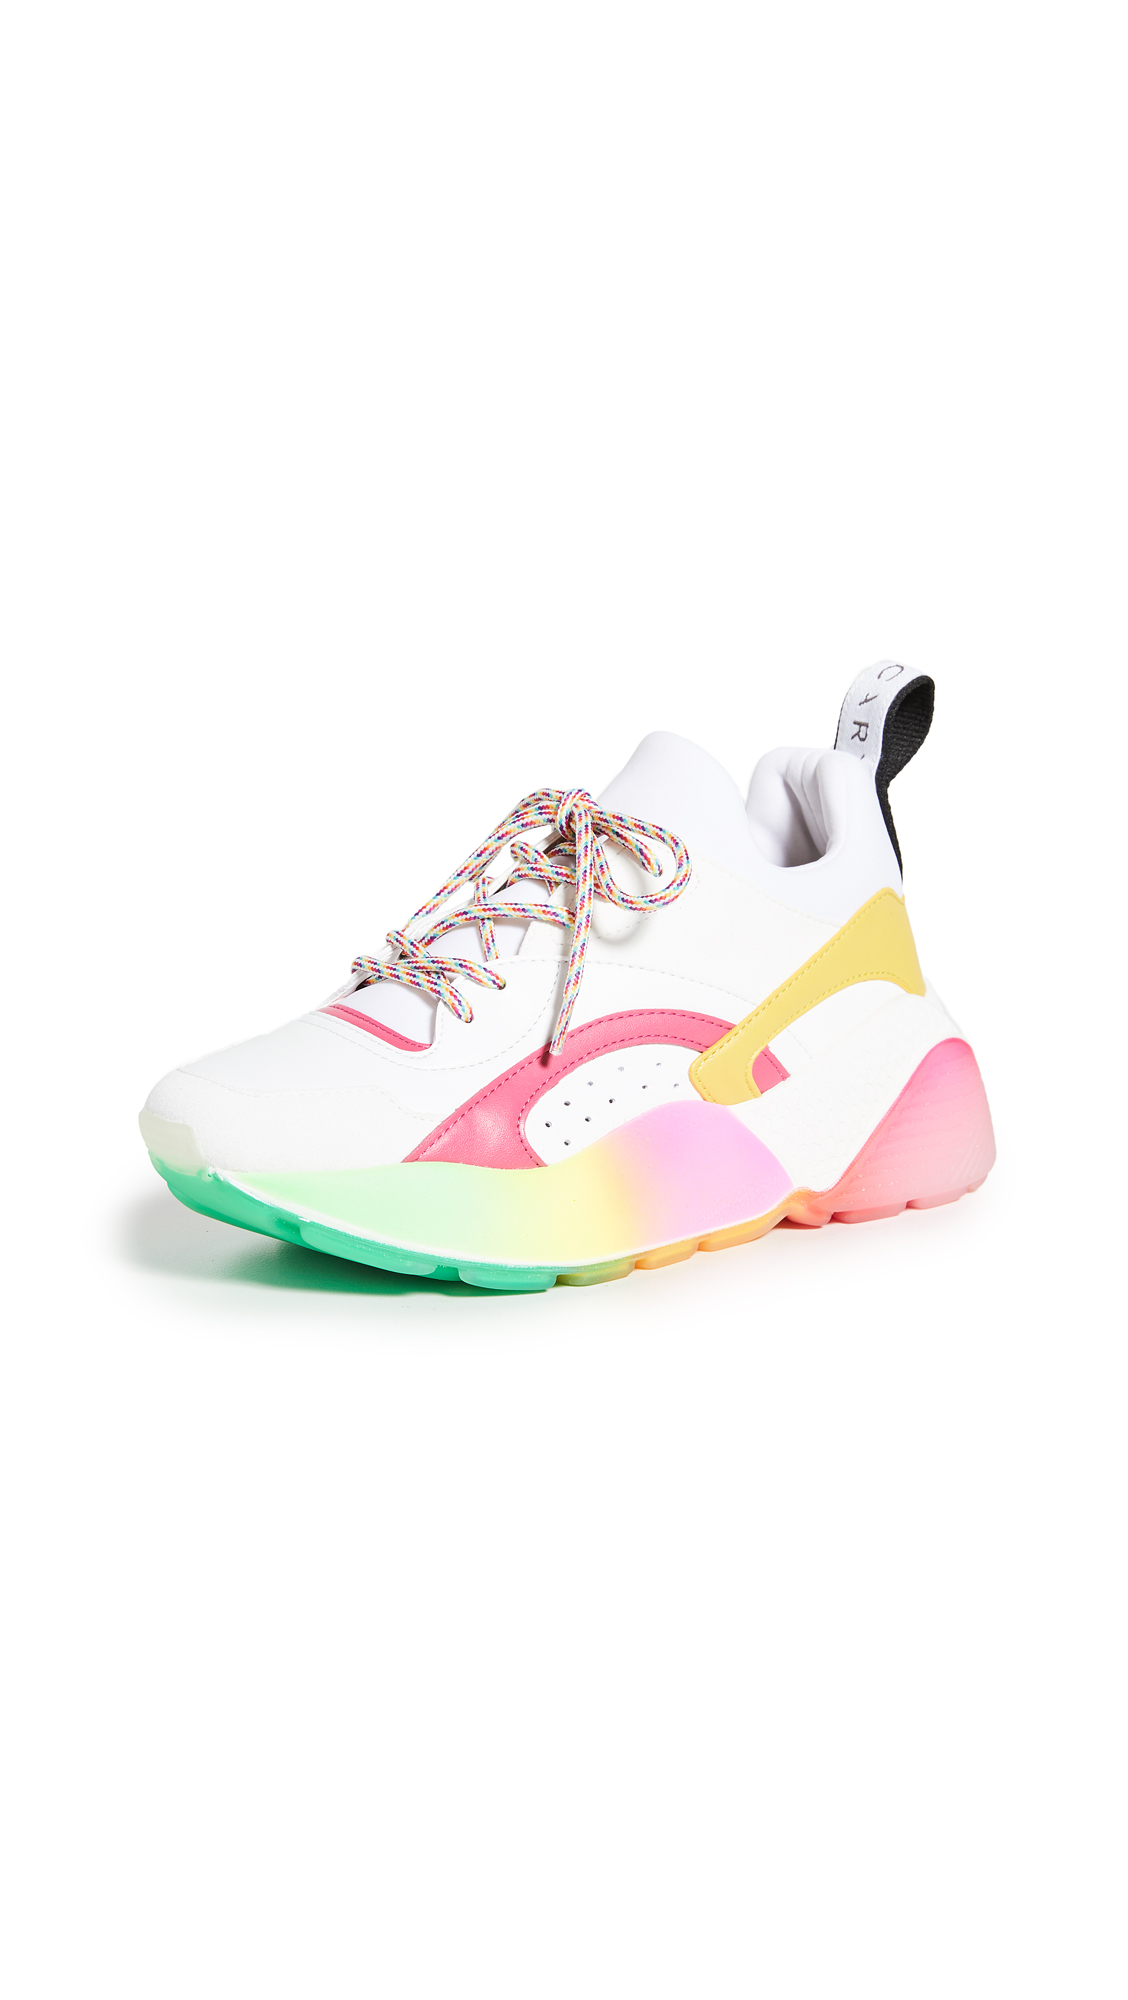 Buy Stella McCartney Eclypse Sneakers online, shop Stella McCartney